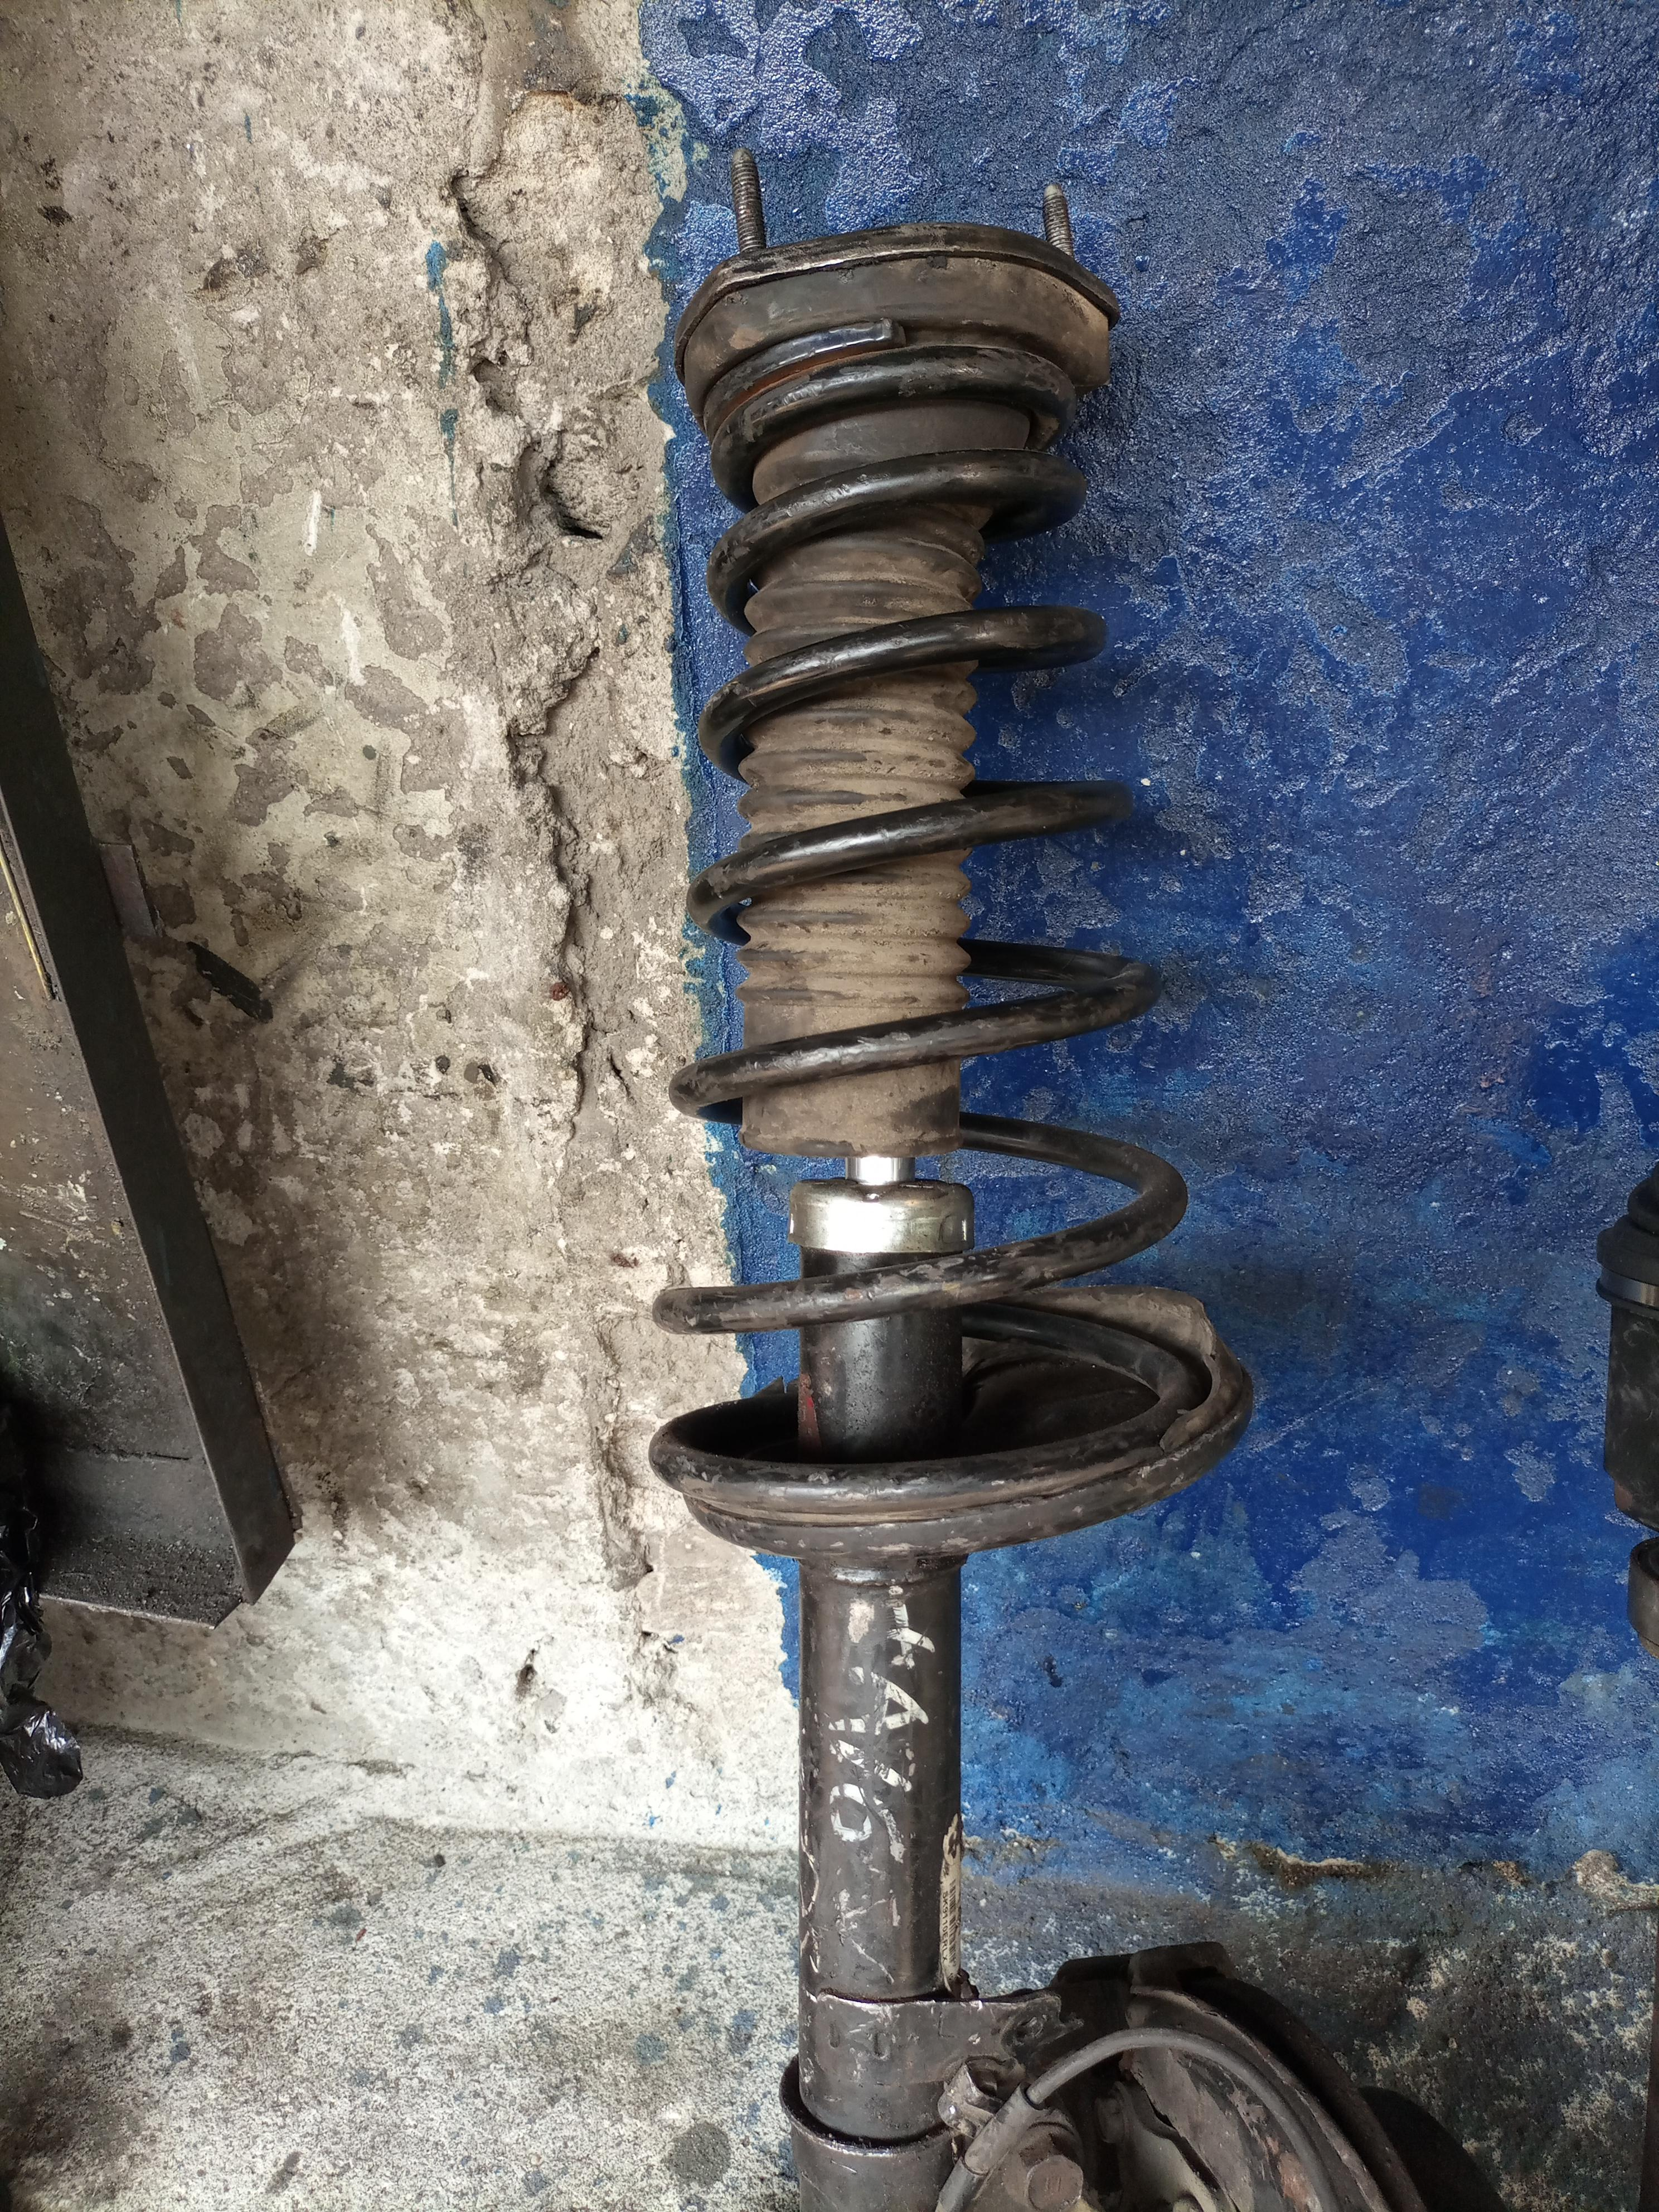 cleam american used shock absorber